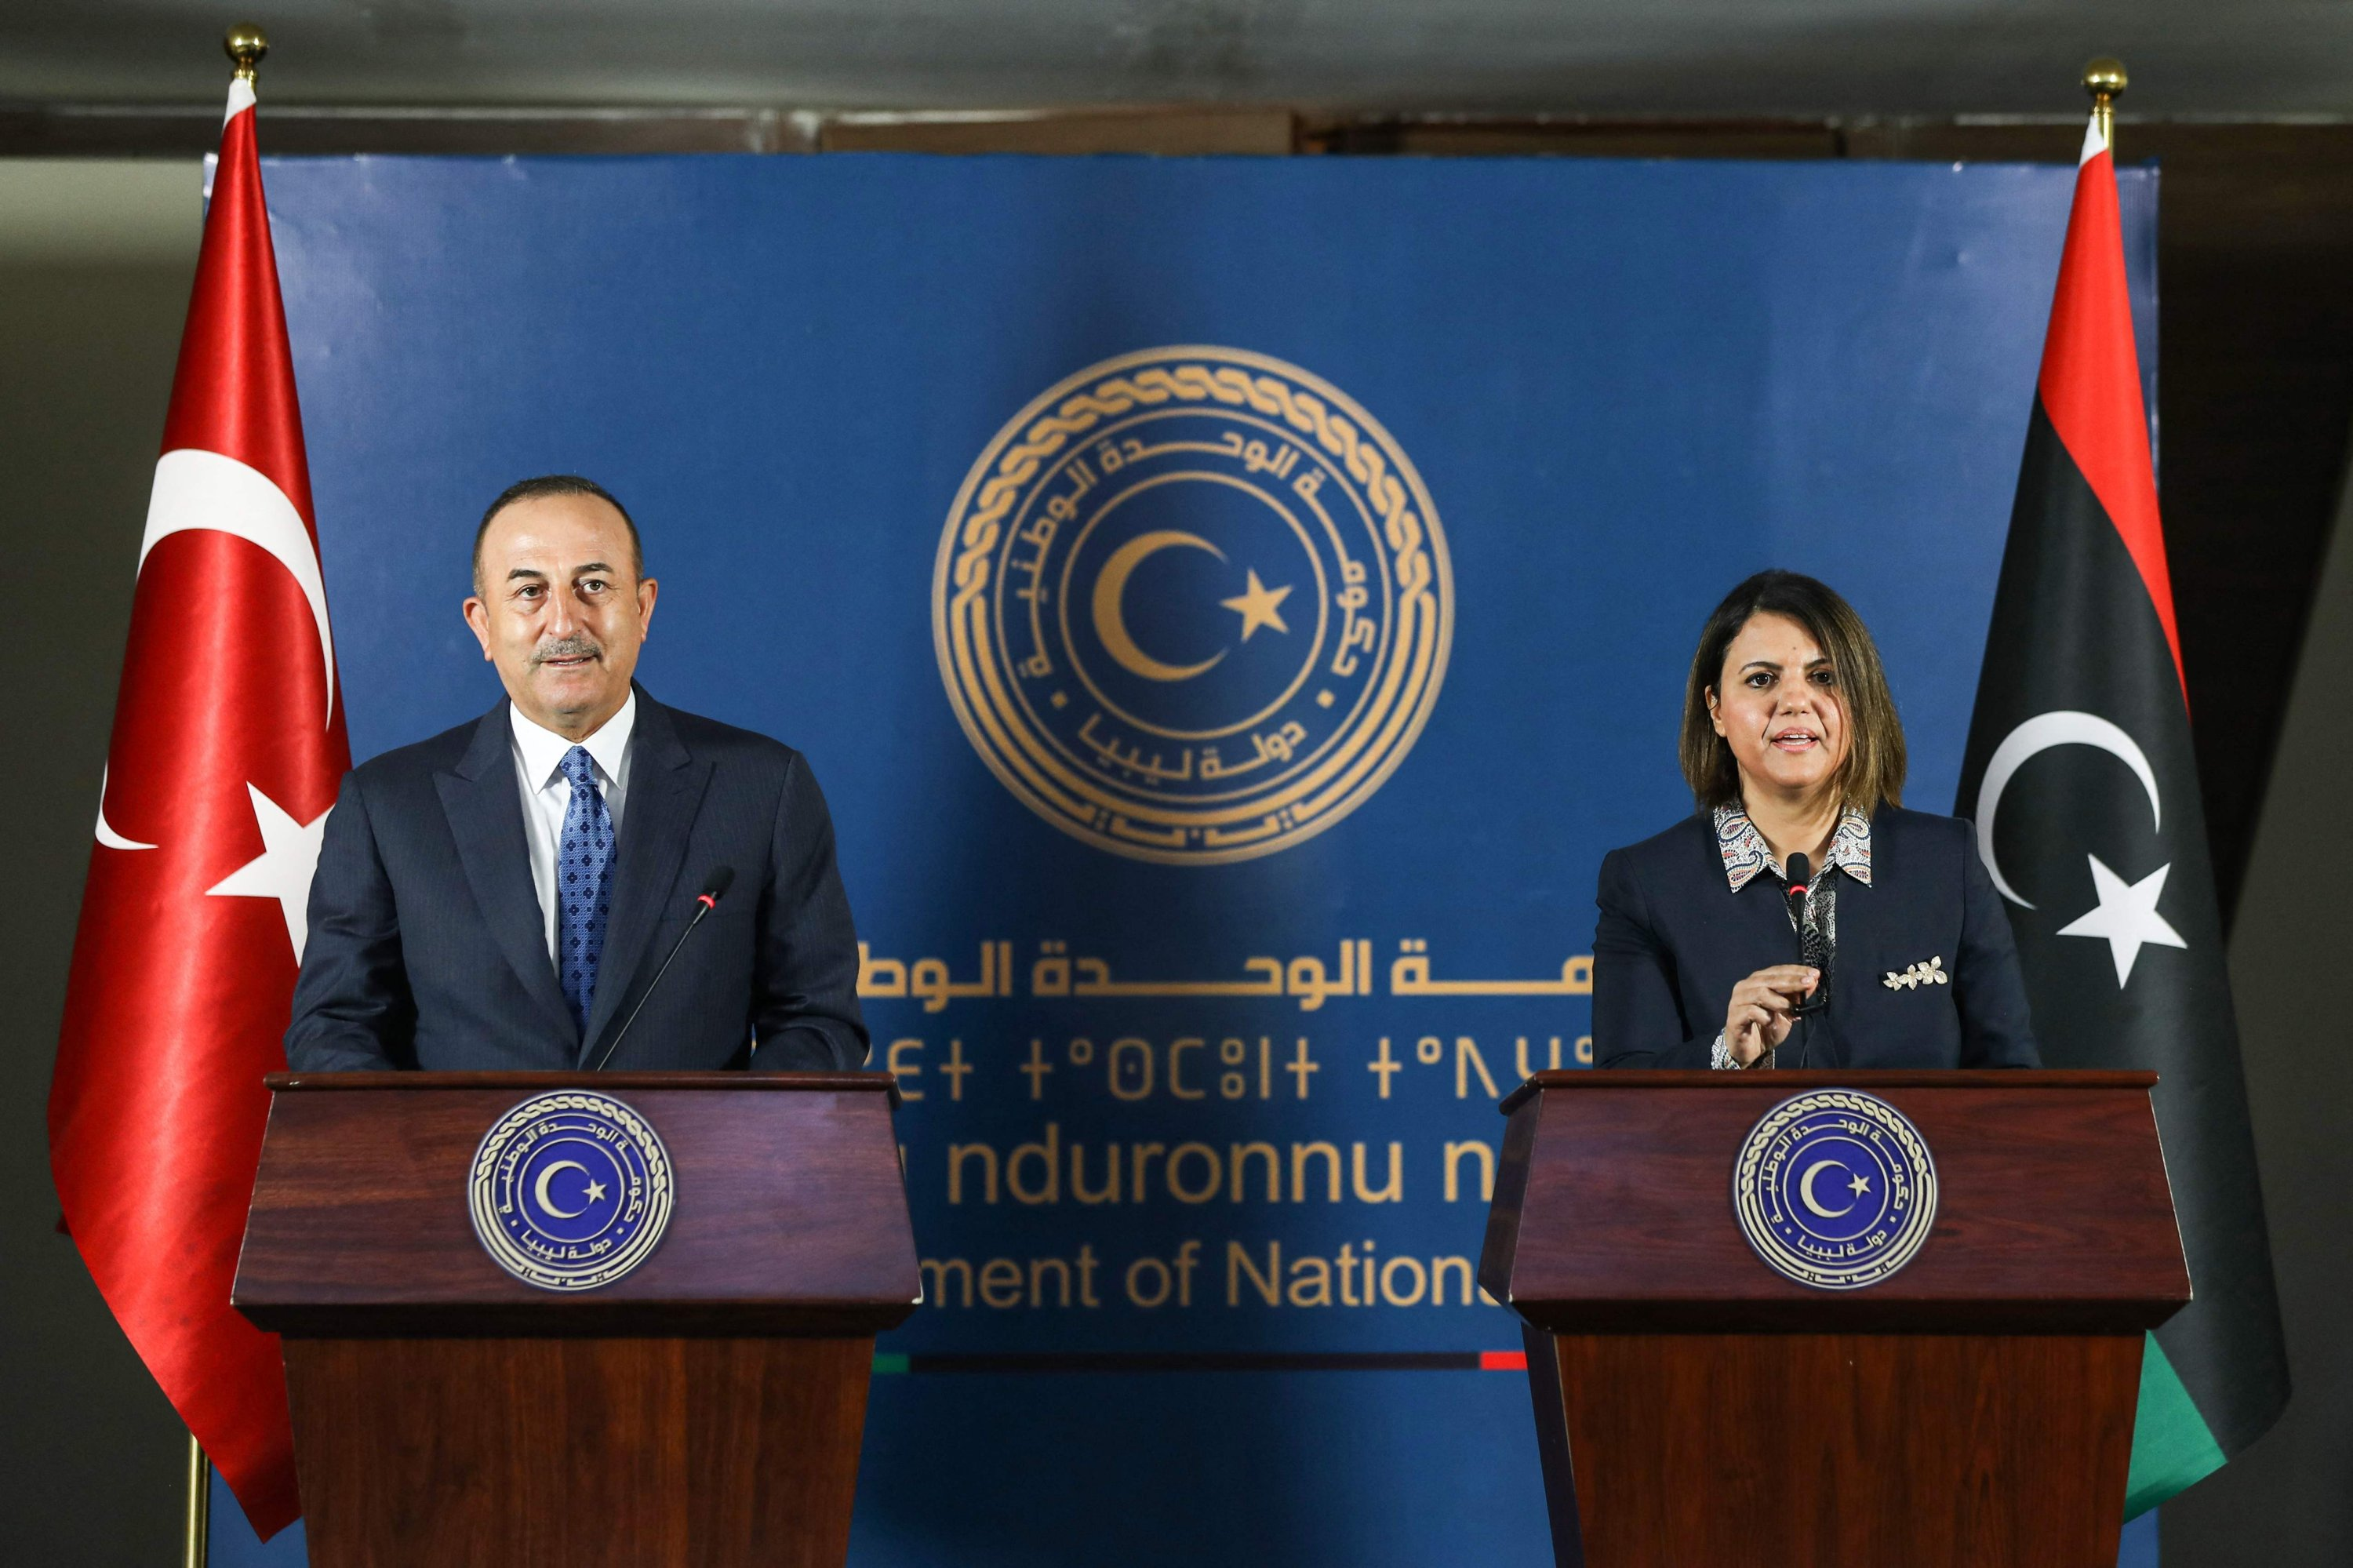 Foreign Minister Mevlüt Çavuşoğlu (L) and Libya's Foreign Minister Najla al-Mangoush during a joint press conference in the capital Tripoli, Libya, May 3, 2021. (AFP Photo)